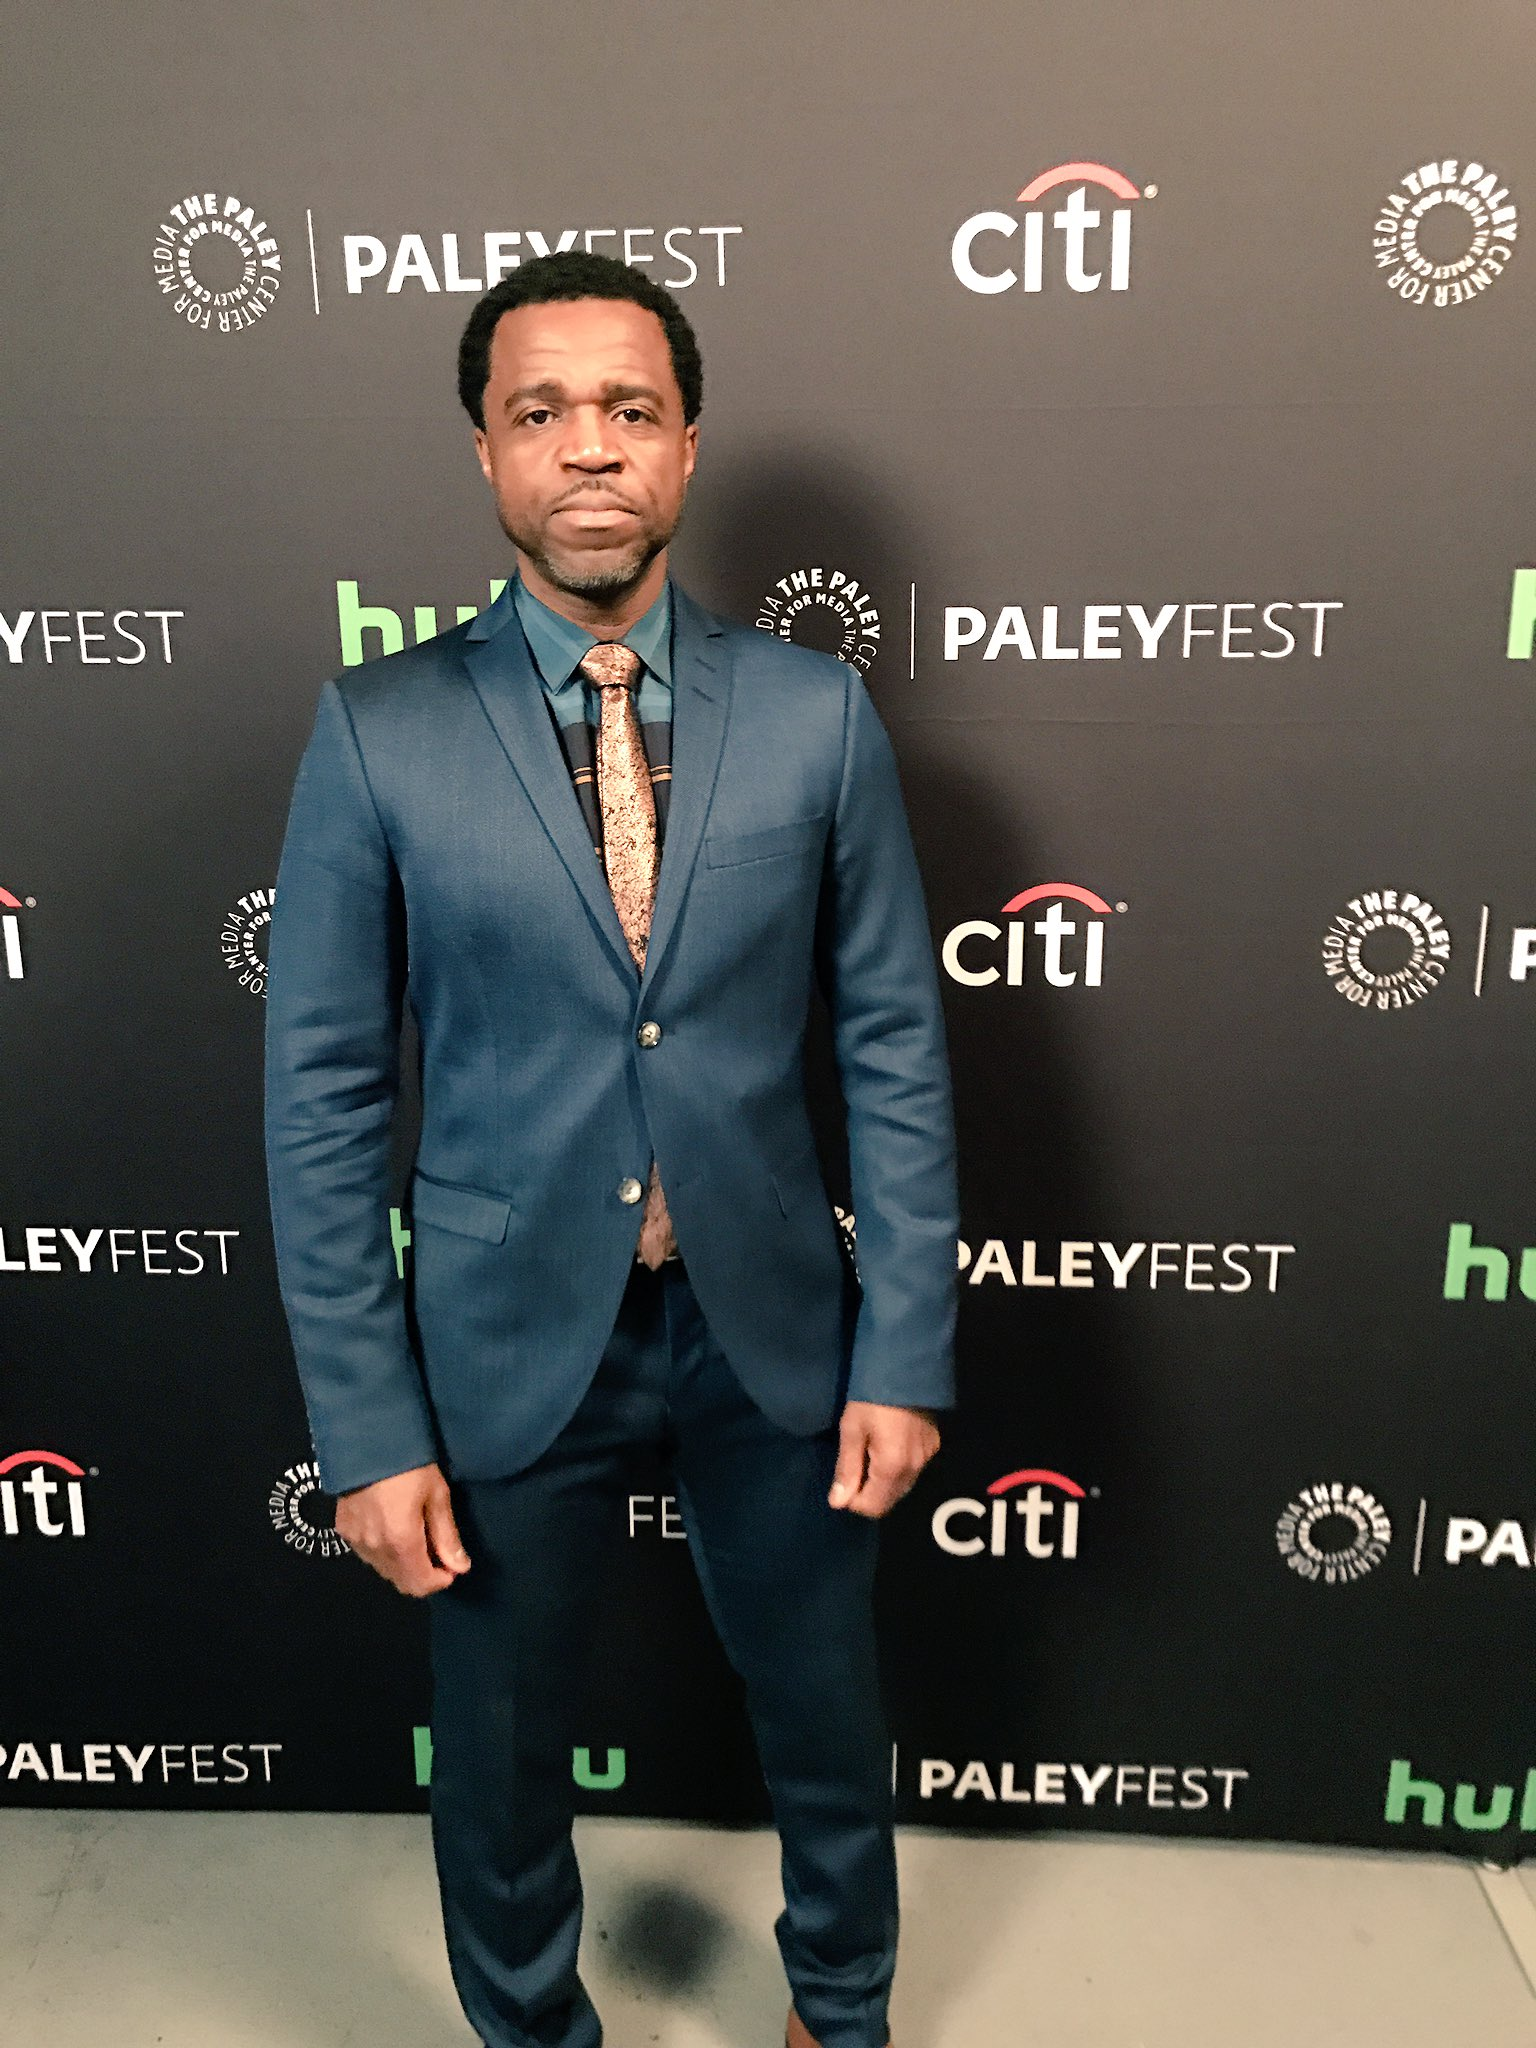 It's Detective Art! Aka Kevin Hanchard - he suited up for #PaleyFest and we like it! 📺🌟👍🏼#OrphanBlack https://t.co/ZodlkjU1b2